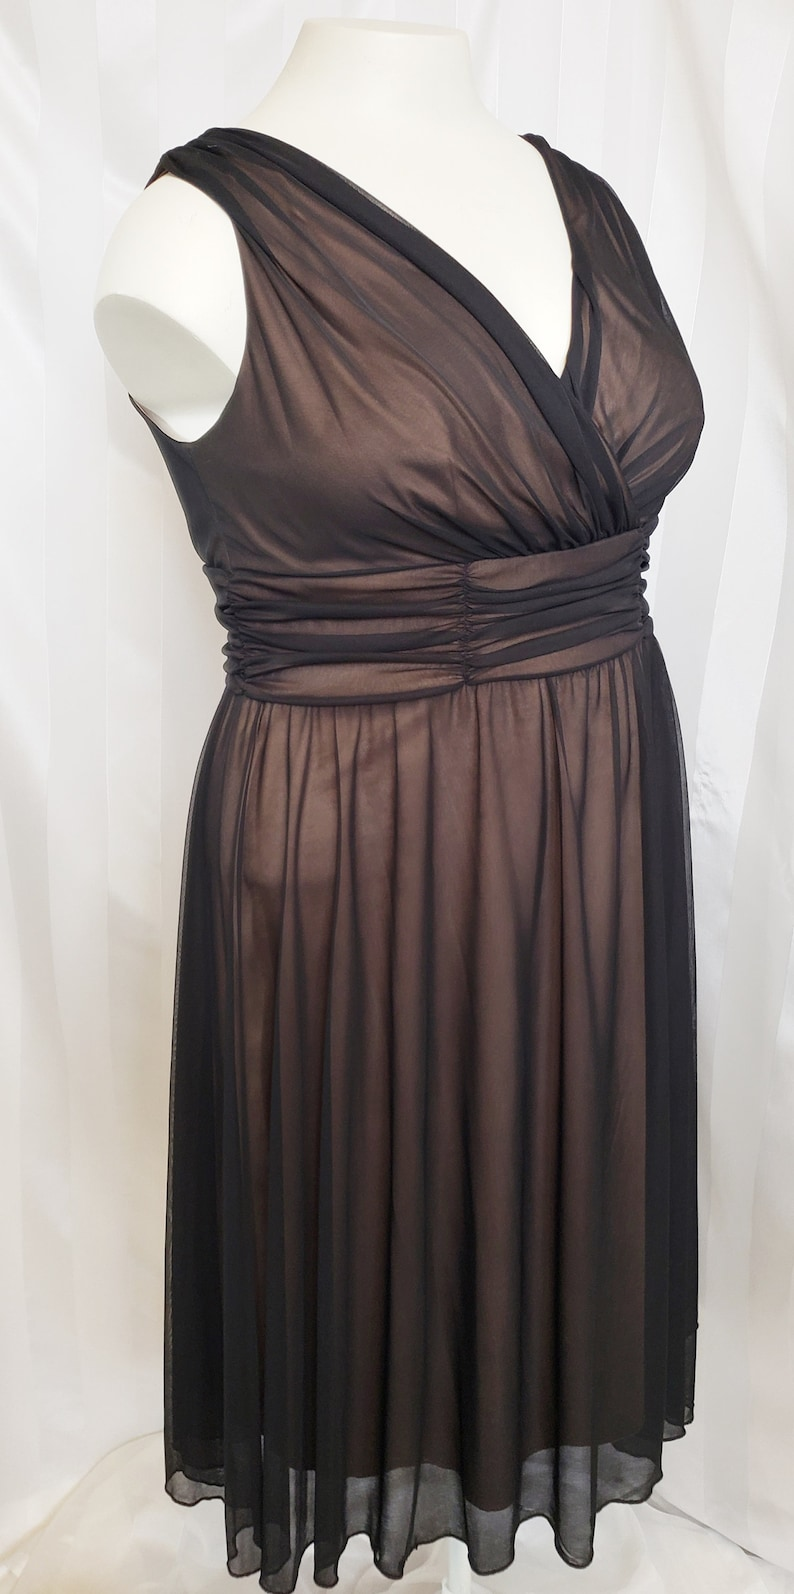 1950s Cocktail Dresses, Party Dresses 18 Curvy Lady---1950s-style Classic Little Black Dress SZ 18 $78.00 AT vintagedancer.com